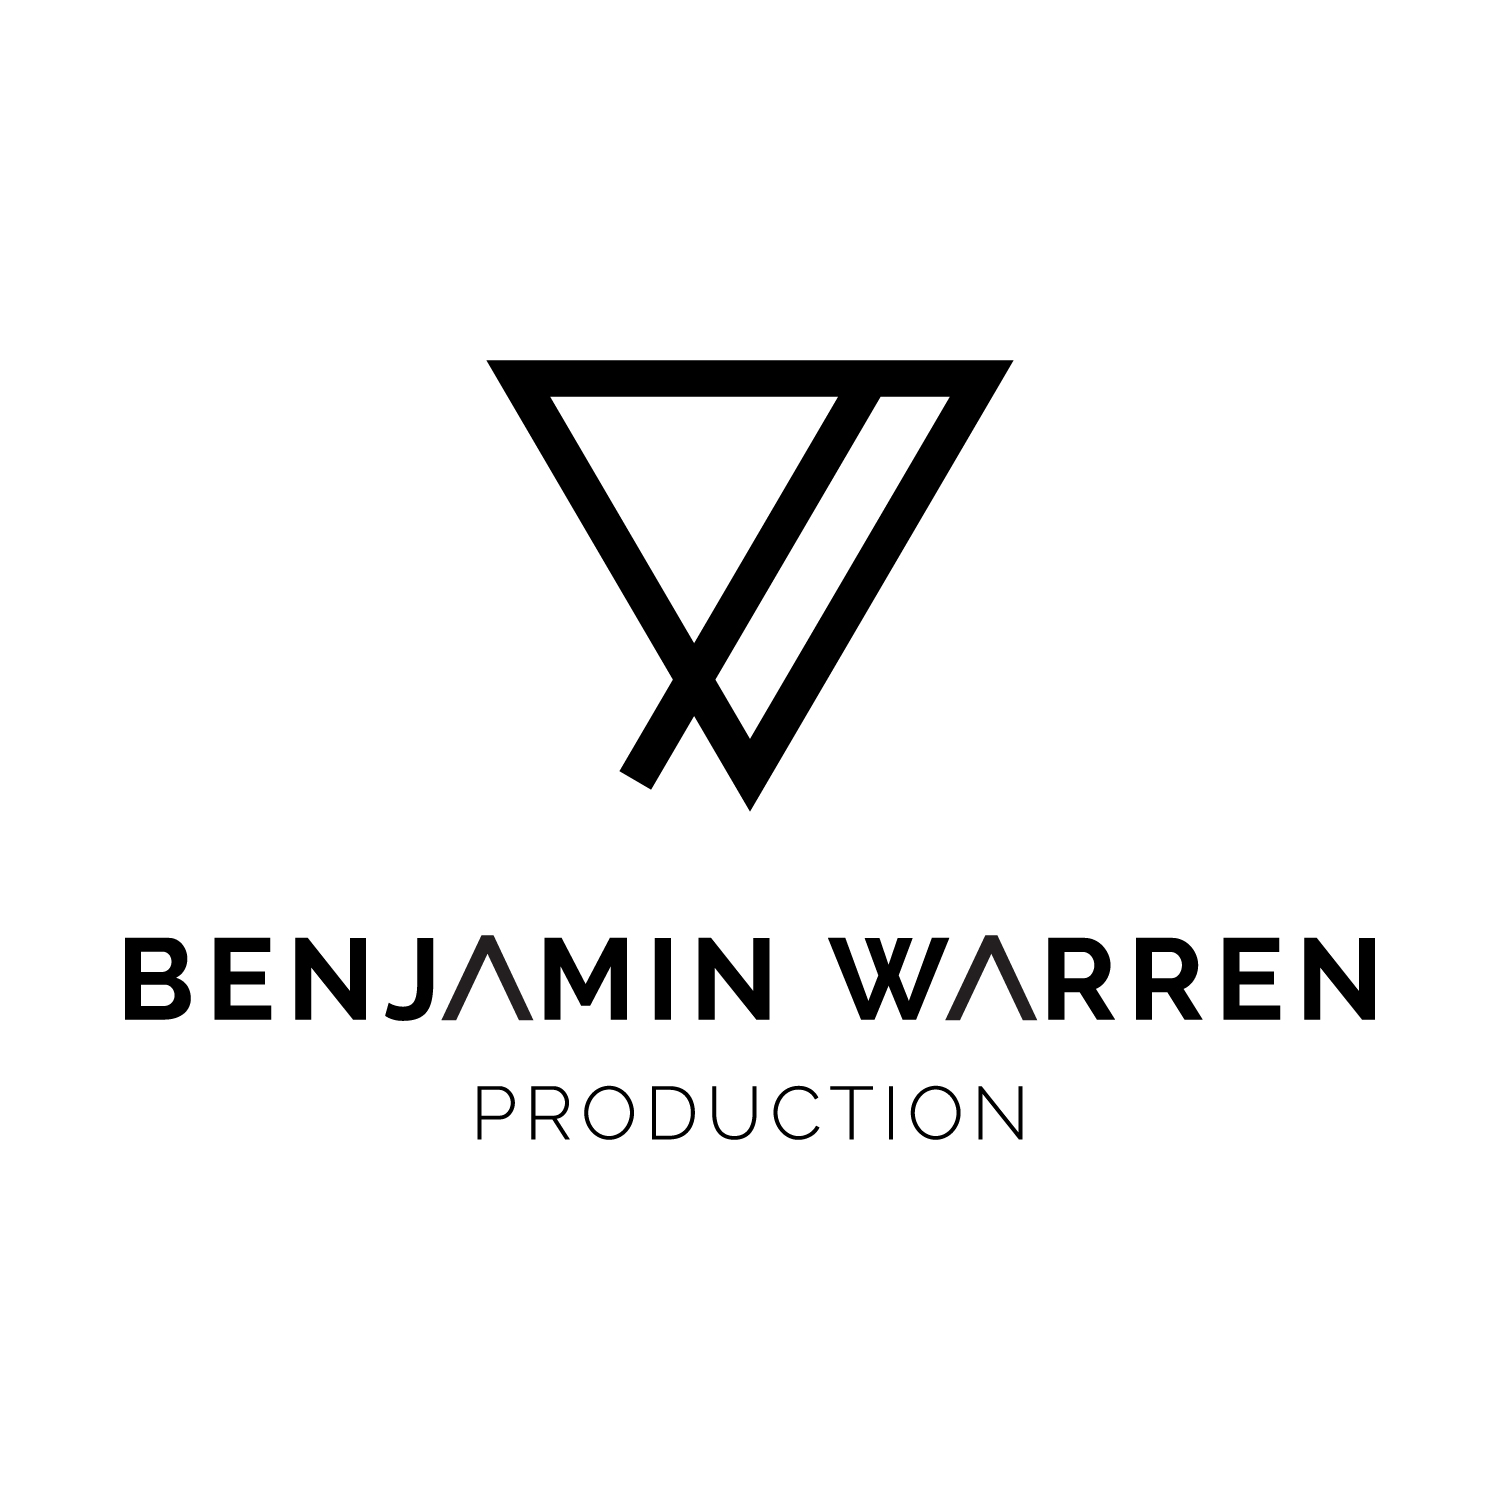 Benjamin Warren Production